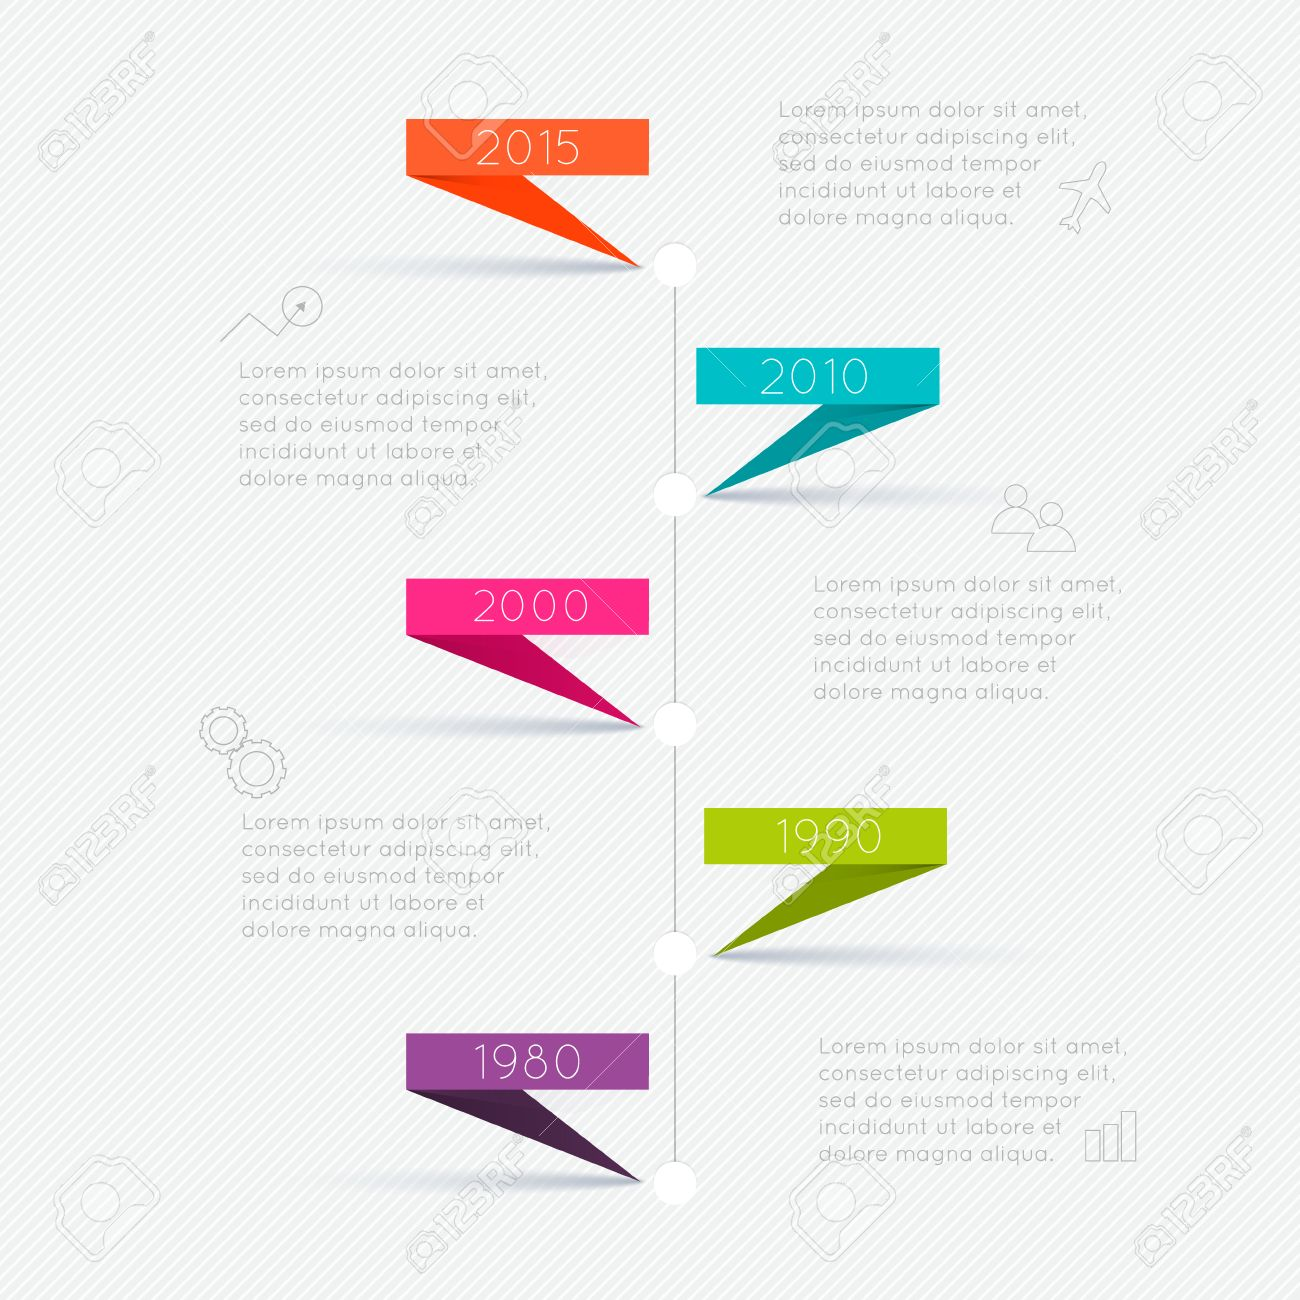 Timeline Infographic Design Templates. Charts, Diagrams and other Vector Elements for Data and Statistics Presentation - 36765542